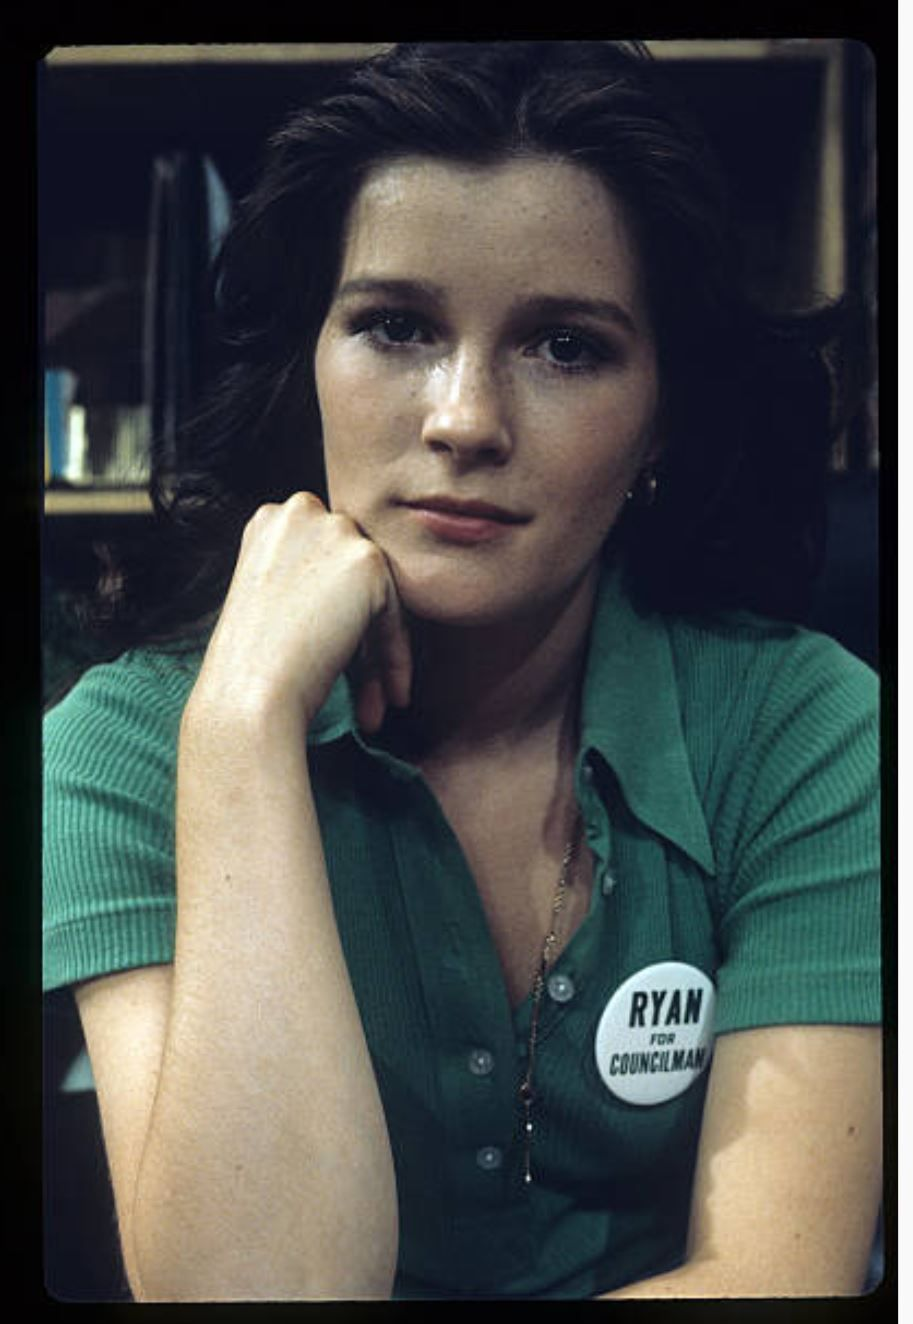 Kate Mulgrew when she played Mary Ryan on Ryan's Hope